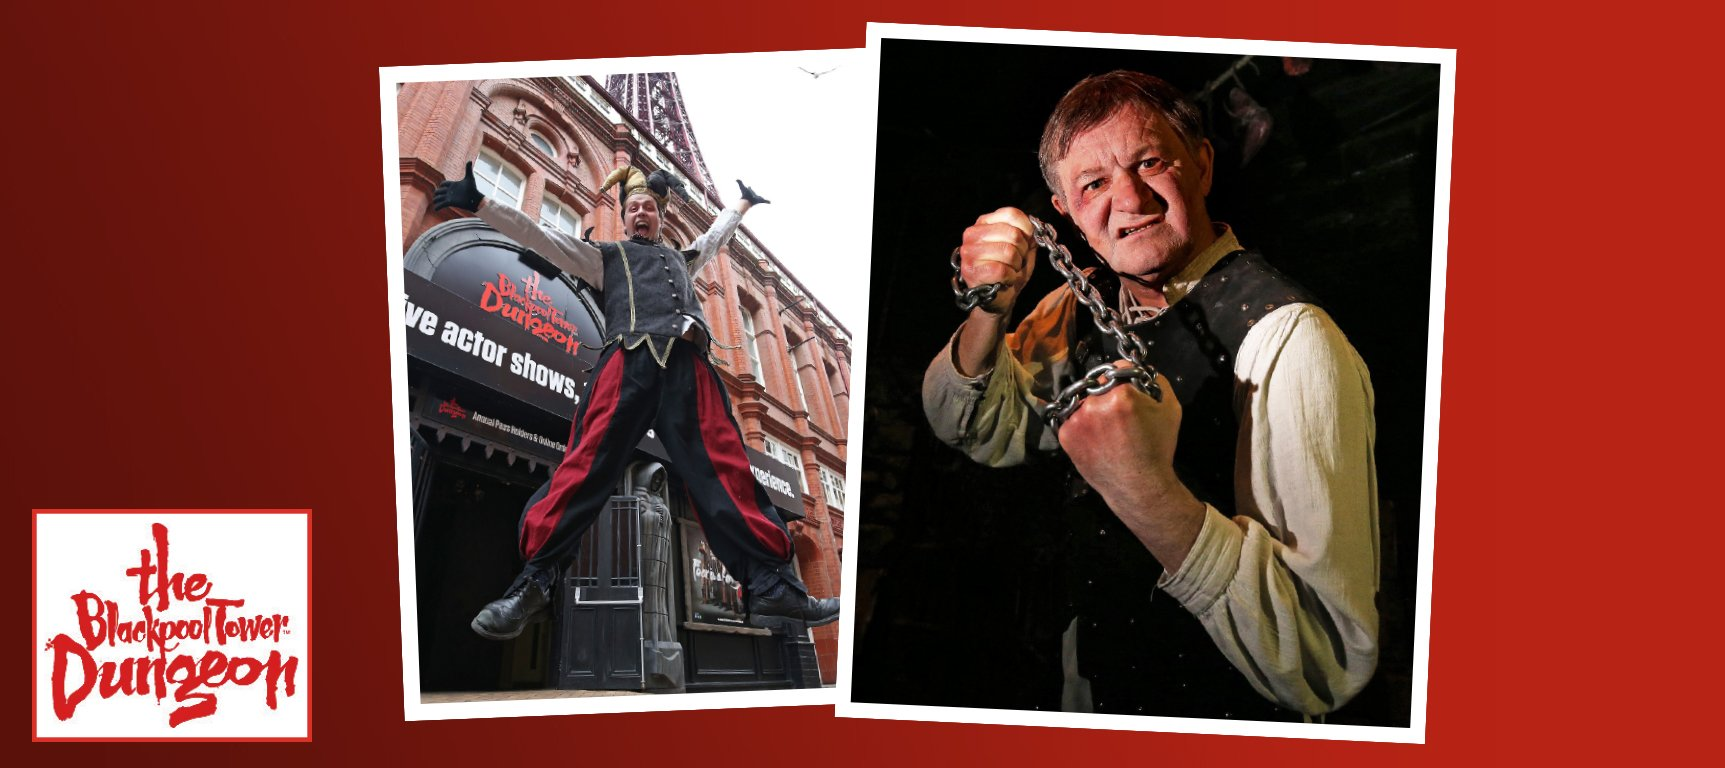 An Overnight Stay at the Blackpool Tower Dungeon